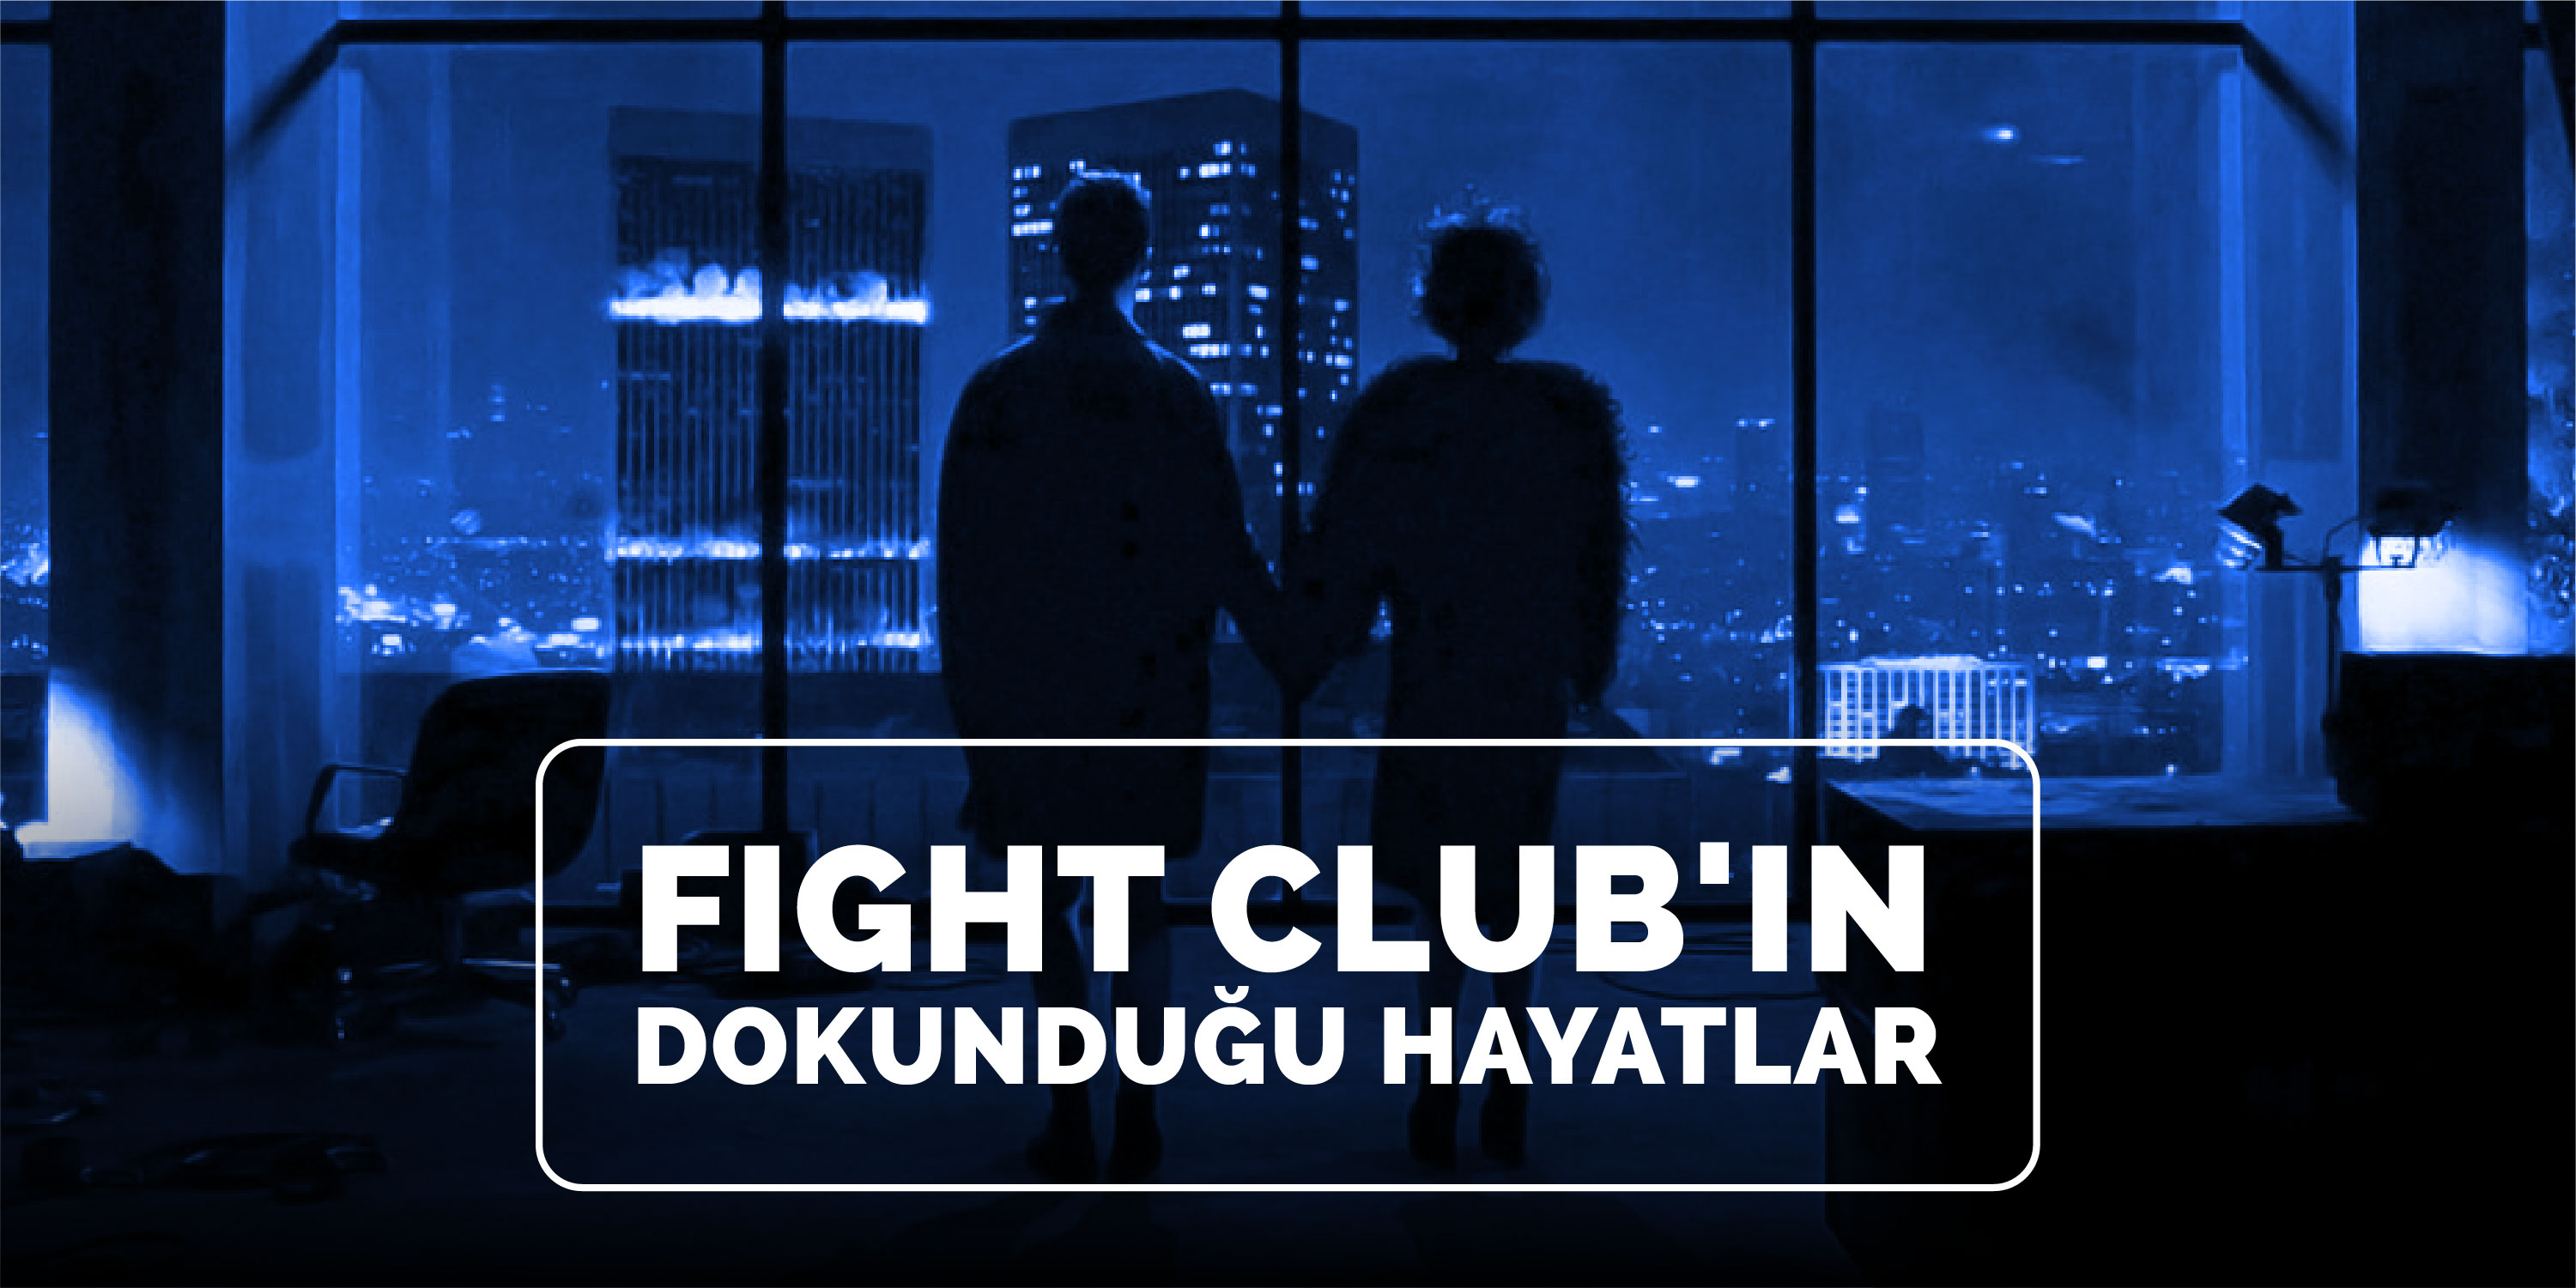 Fight-Club-Dokundugu-Hayatlar-01